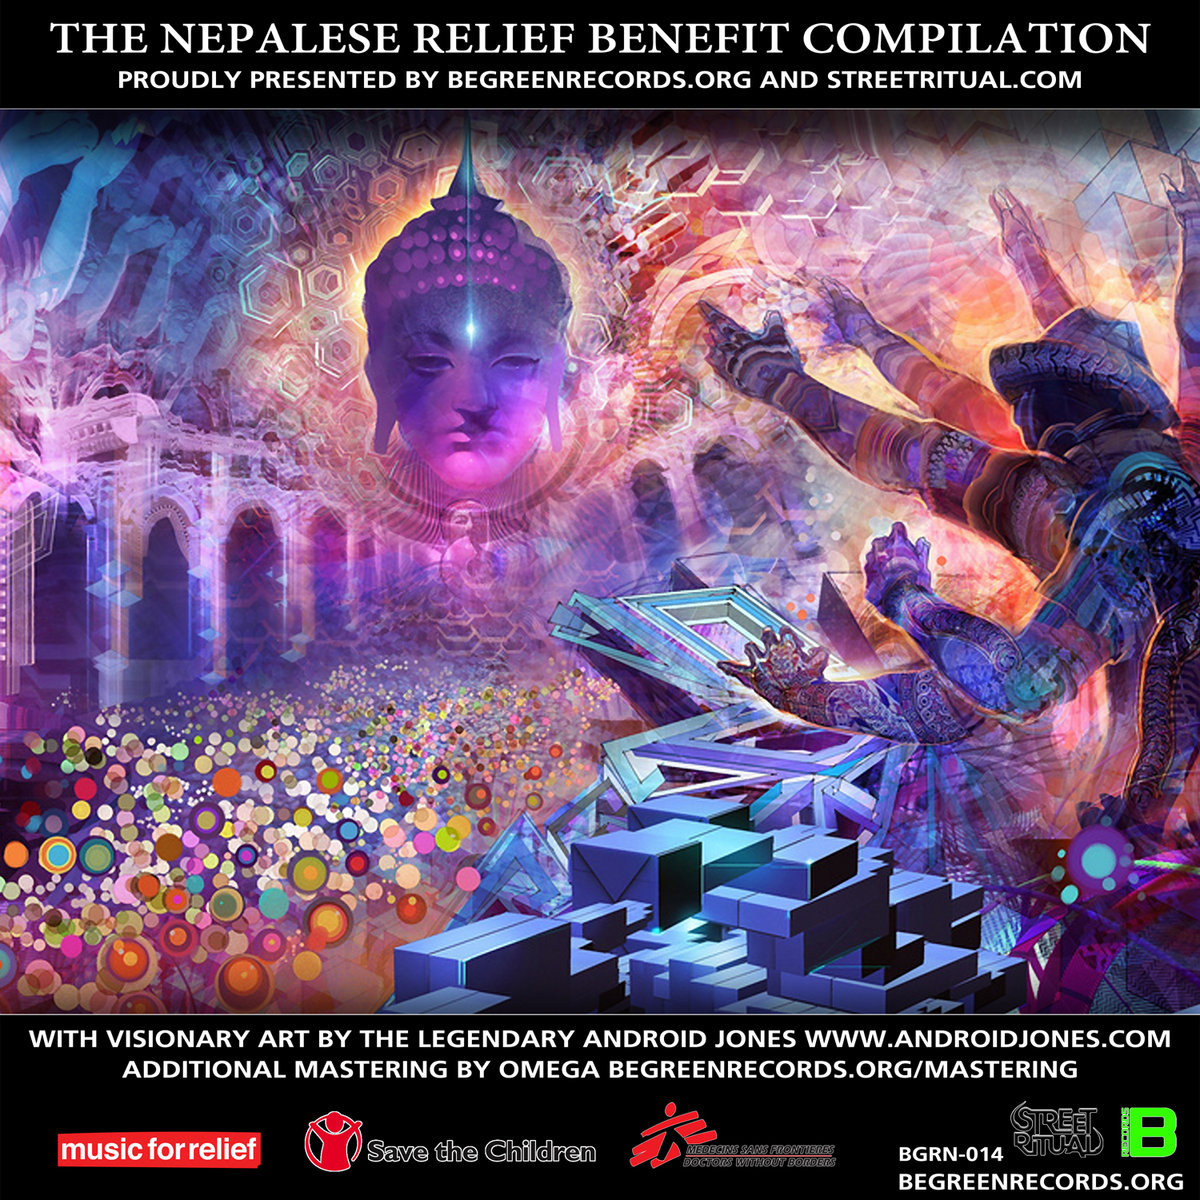 Wasabi Jackson - We Are One @ 'Various Artists - The Nepalese Relief Benefit Compilation' album (bass, electronic)